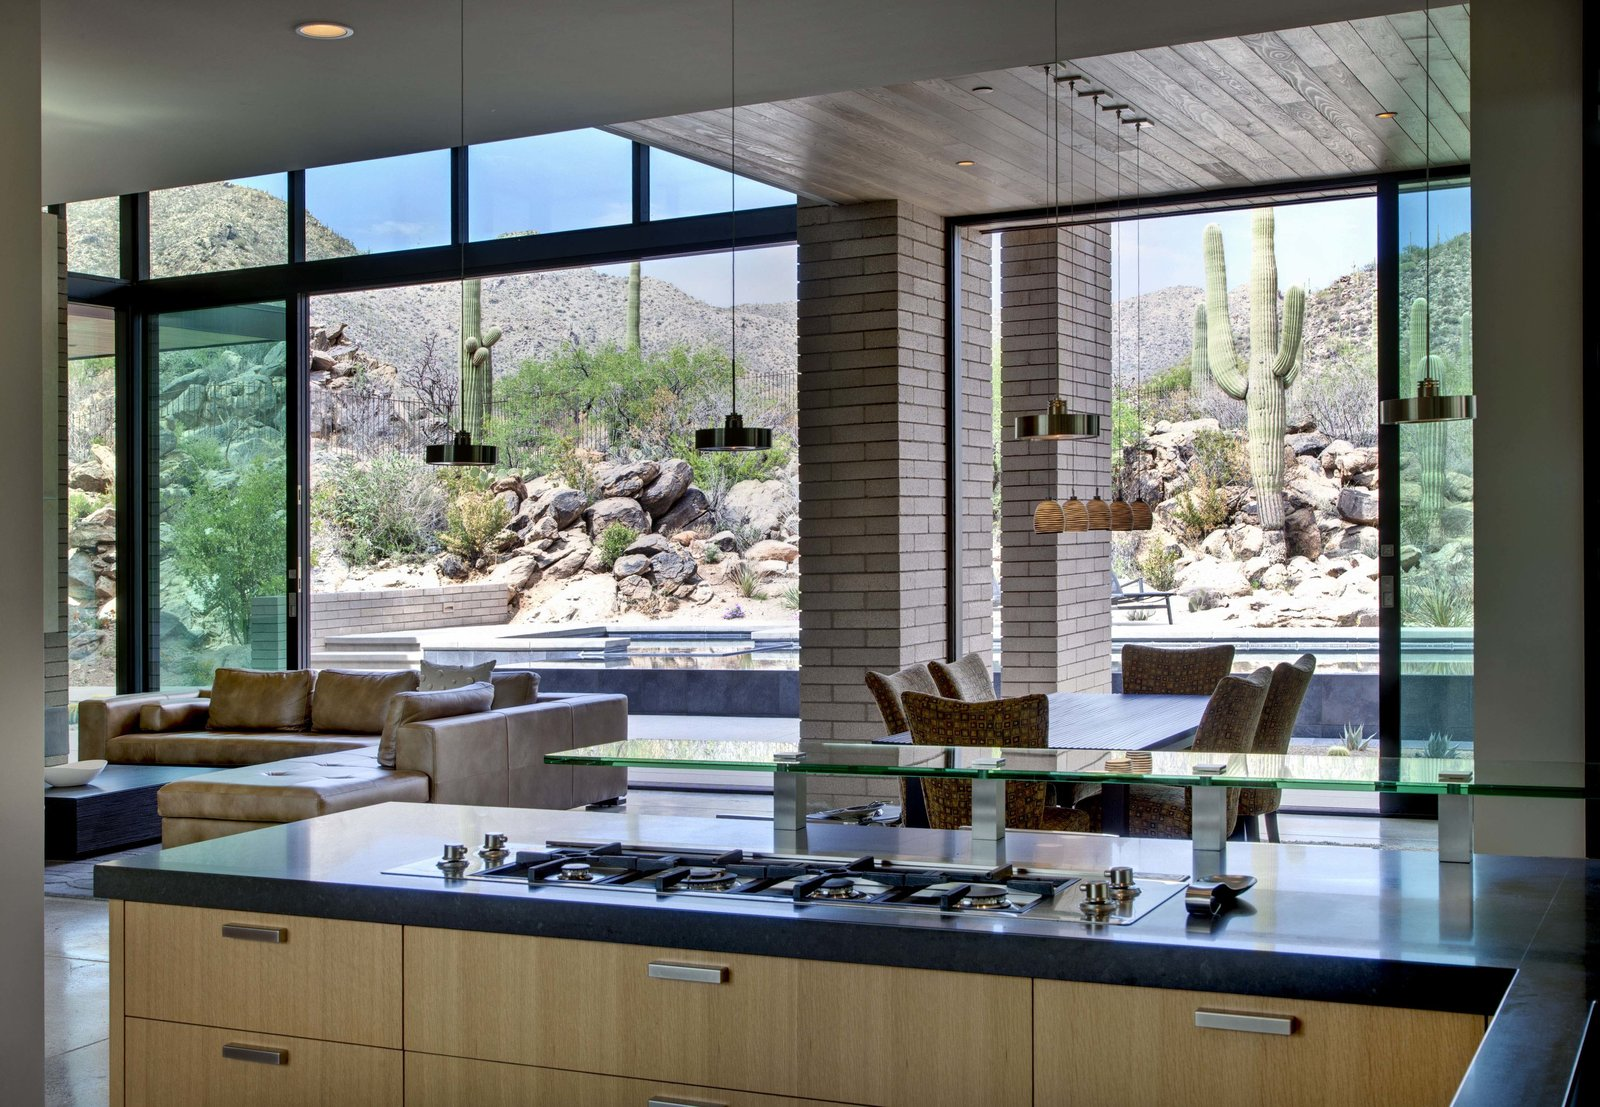 Kitchen, Engineered Quartz Counter, Wood Cabinet, Concrete Floor, Glass Tile Backsplashe, Stone Counter, Pendant Lighting, Recessed Lighting, Ceiling Lighting, and Cooktops  Desert Mountain Home by Kevin B Howard Architects